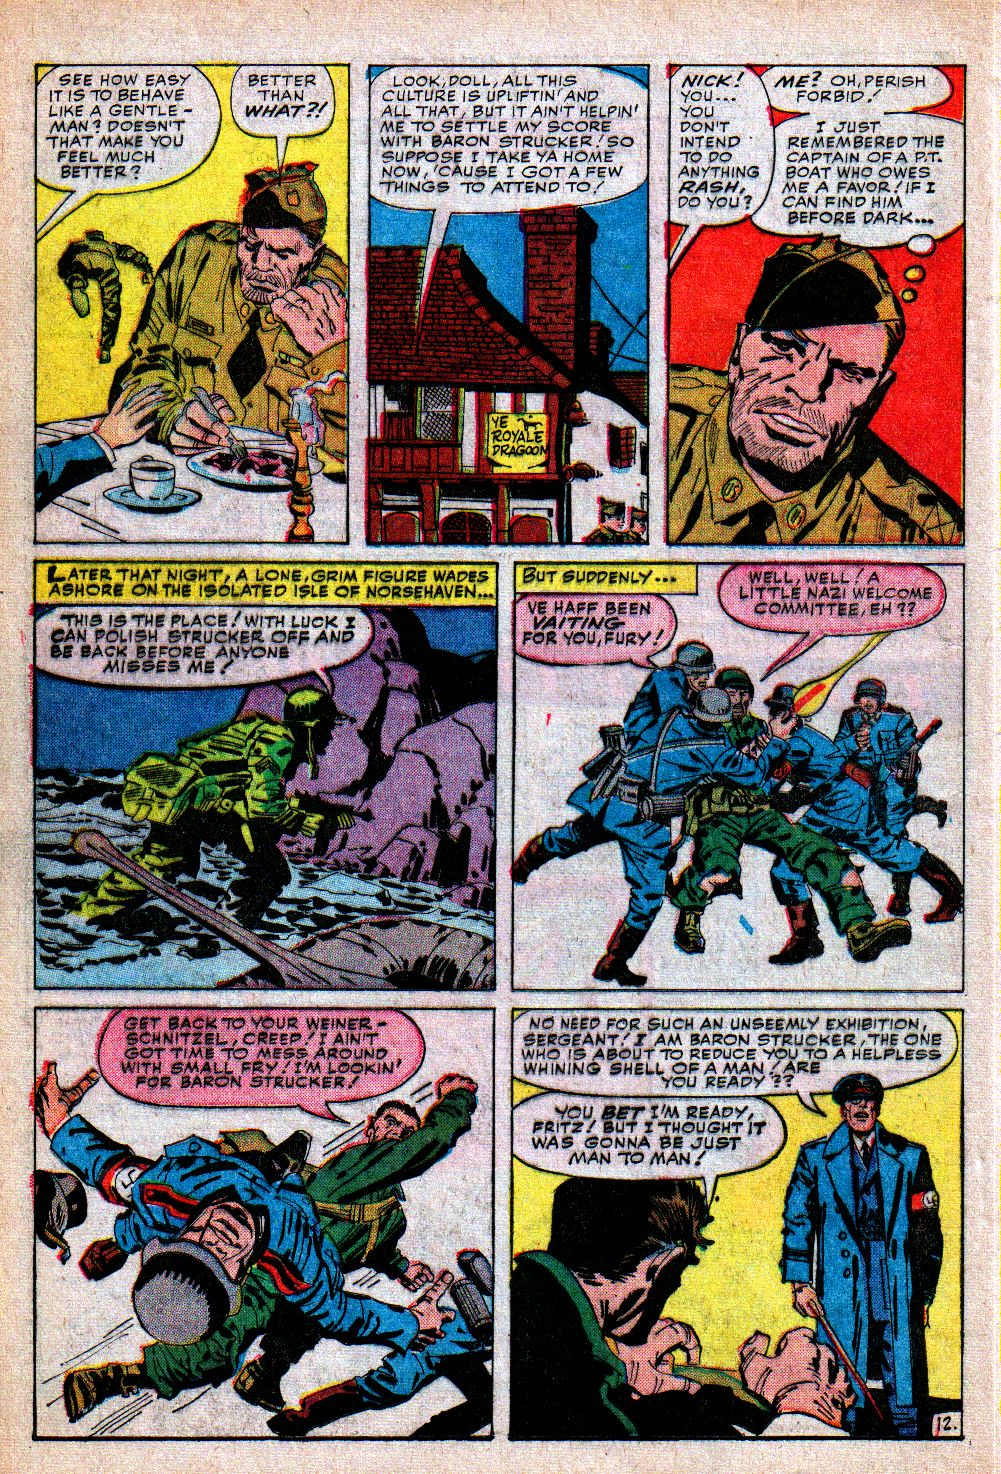 Read online Sgt. Fury comic -  Issue #5 - 16